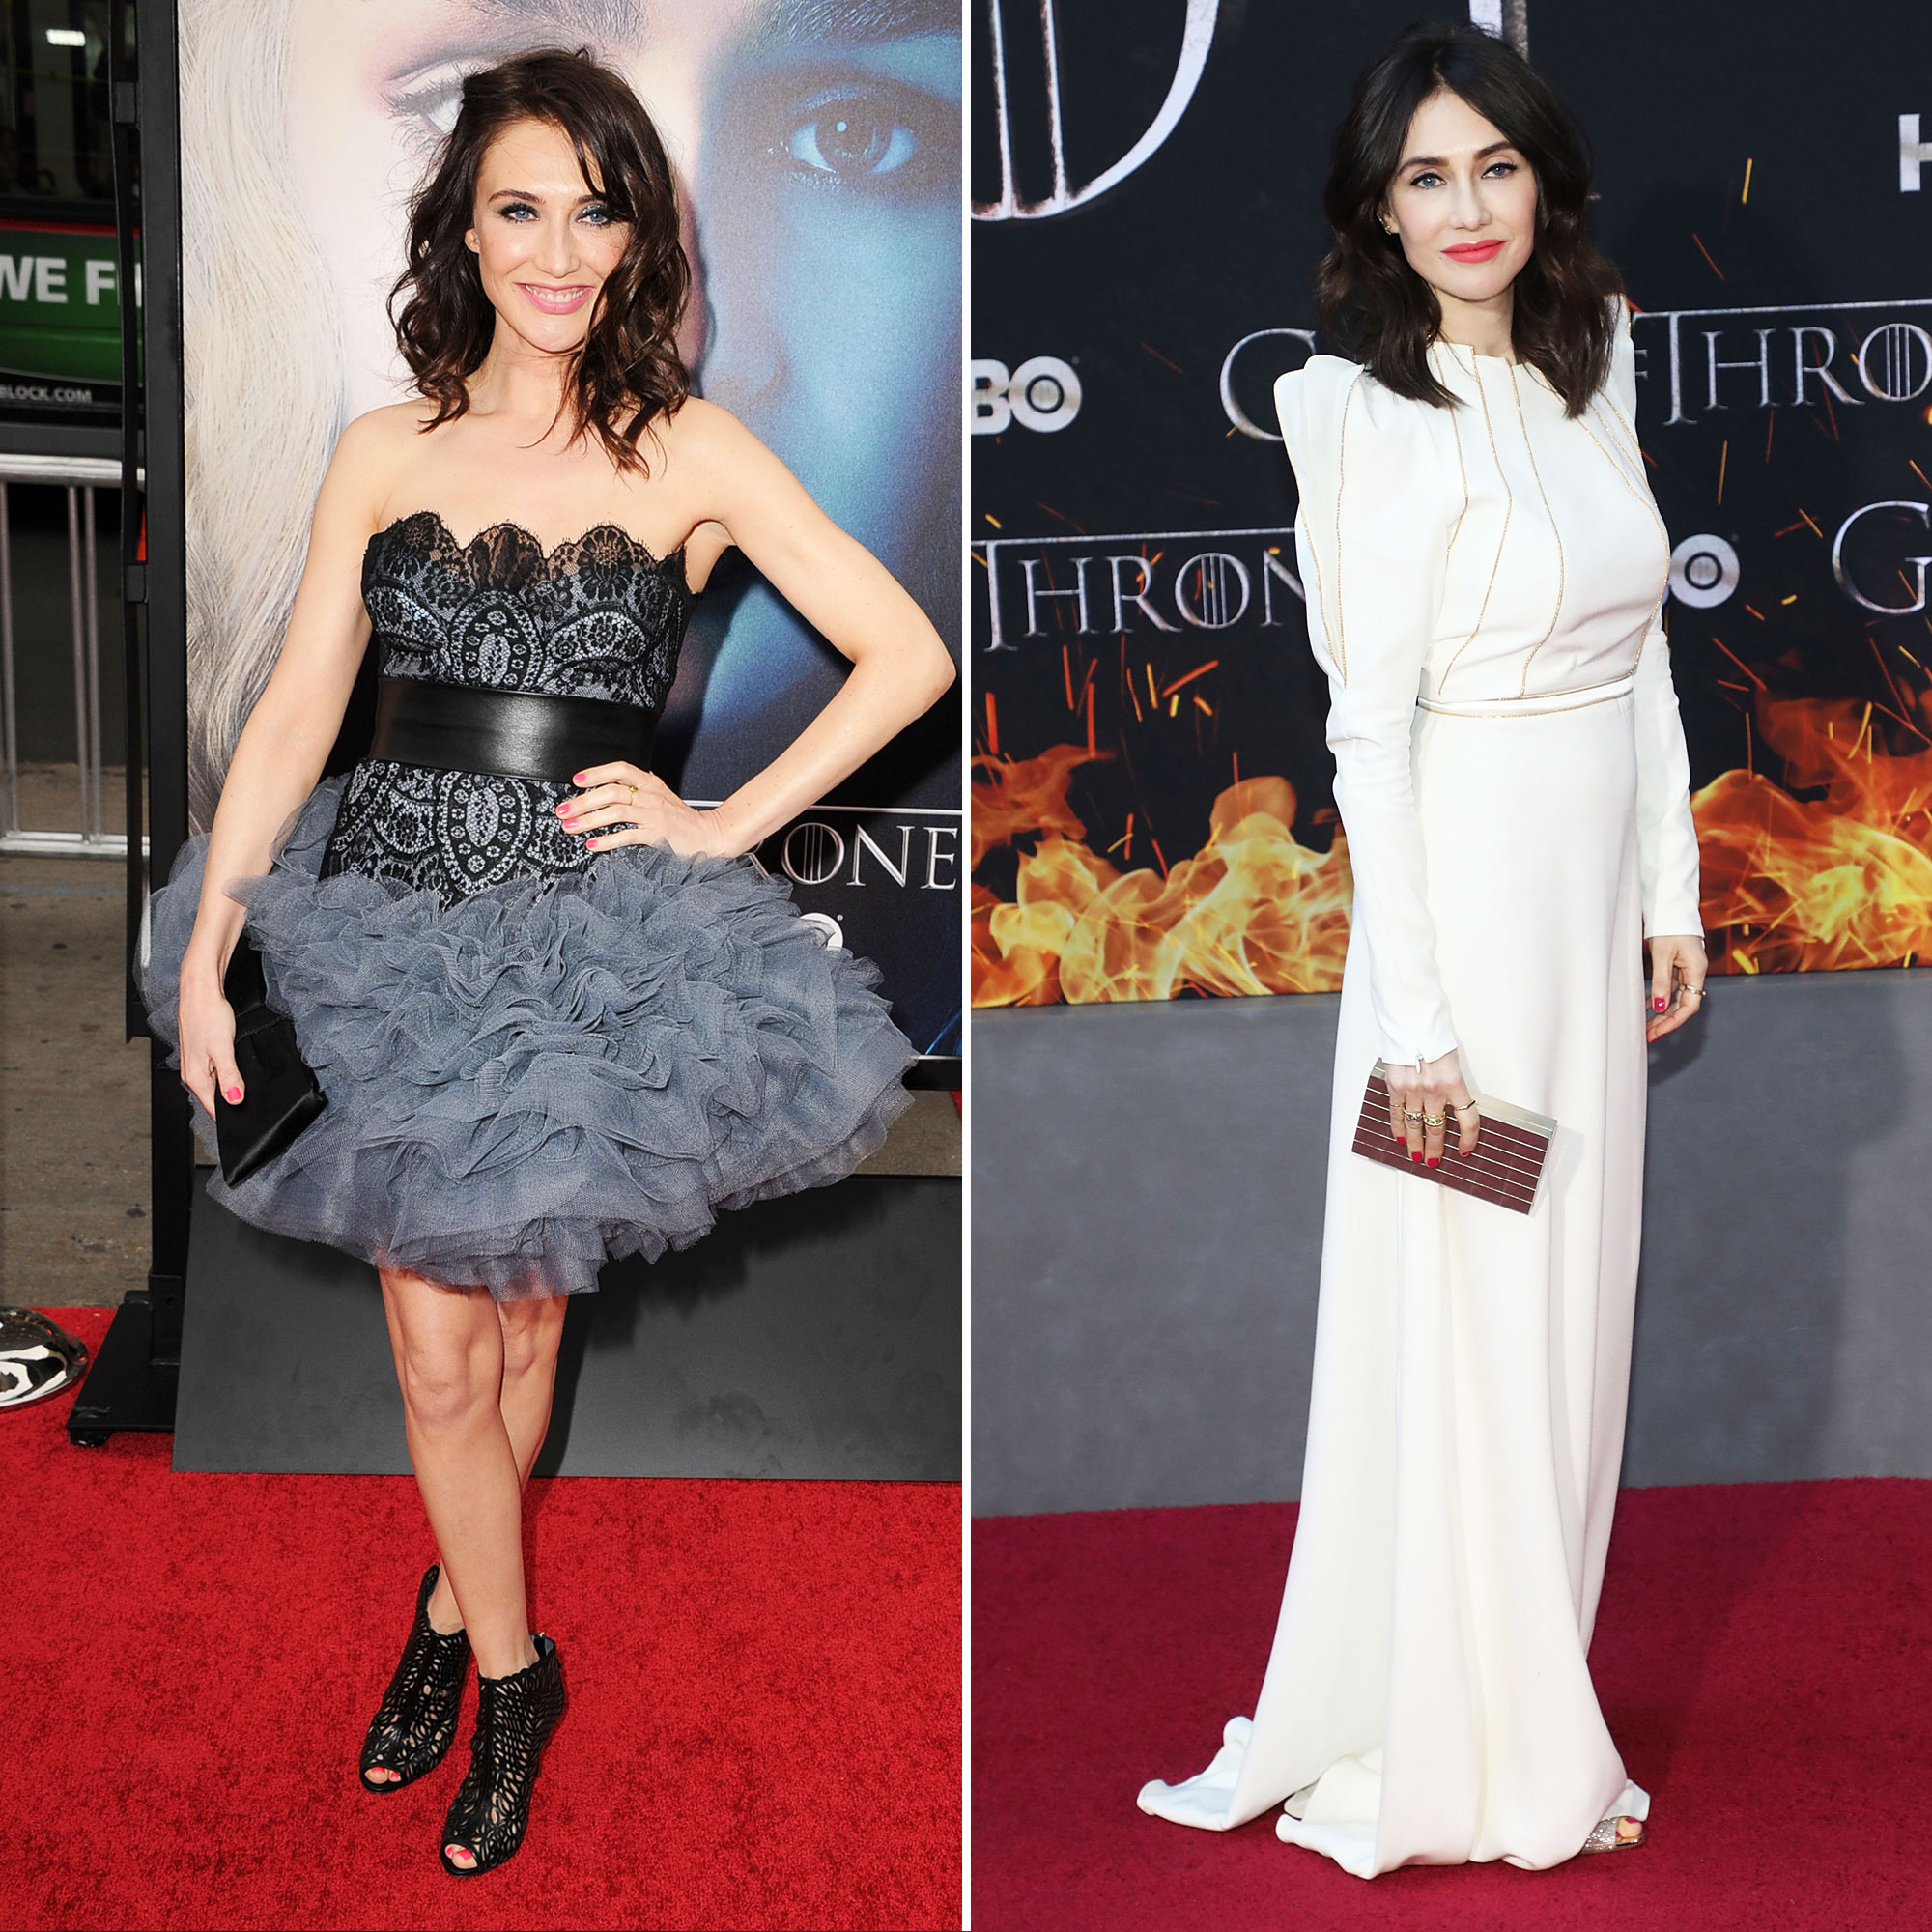 Carice van Houten 'Game of Thrones' Stars: From the First 'GoT' Red Carpet Premiere to the Last - Melisandre (a.k.a. The Red Woman) wasn't exactly a hit from the get-go, but she proved her worth when she brought Jon Snow back from the dead on season 6. Fans can't wait to see what she brings to the table on the mini-series Temple .